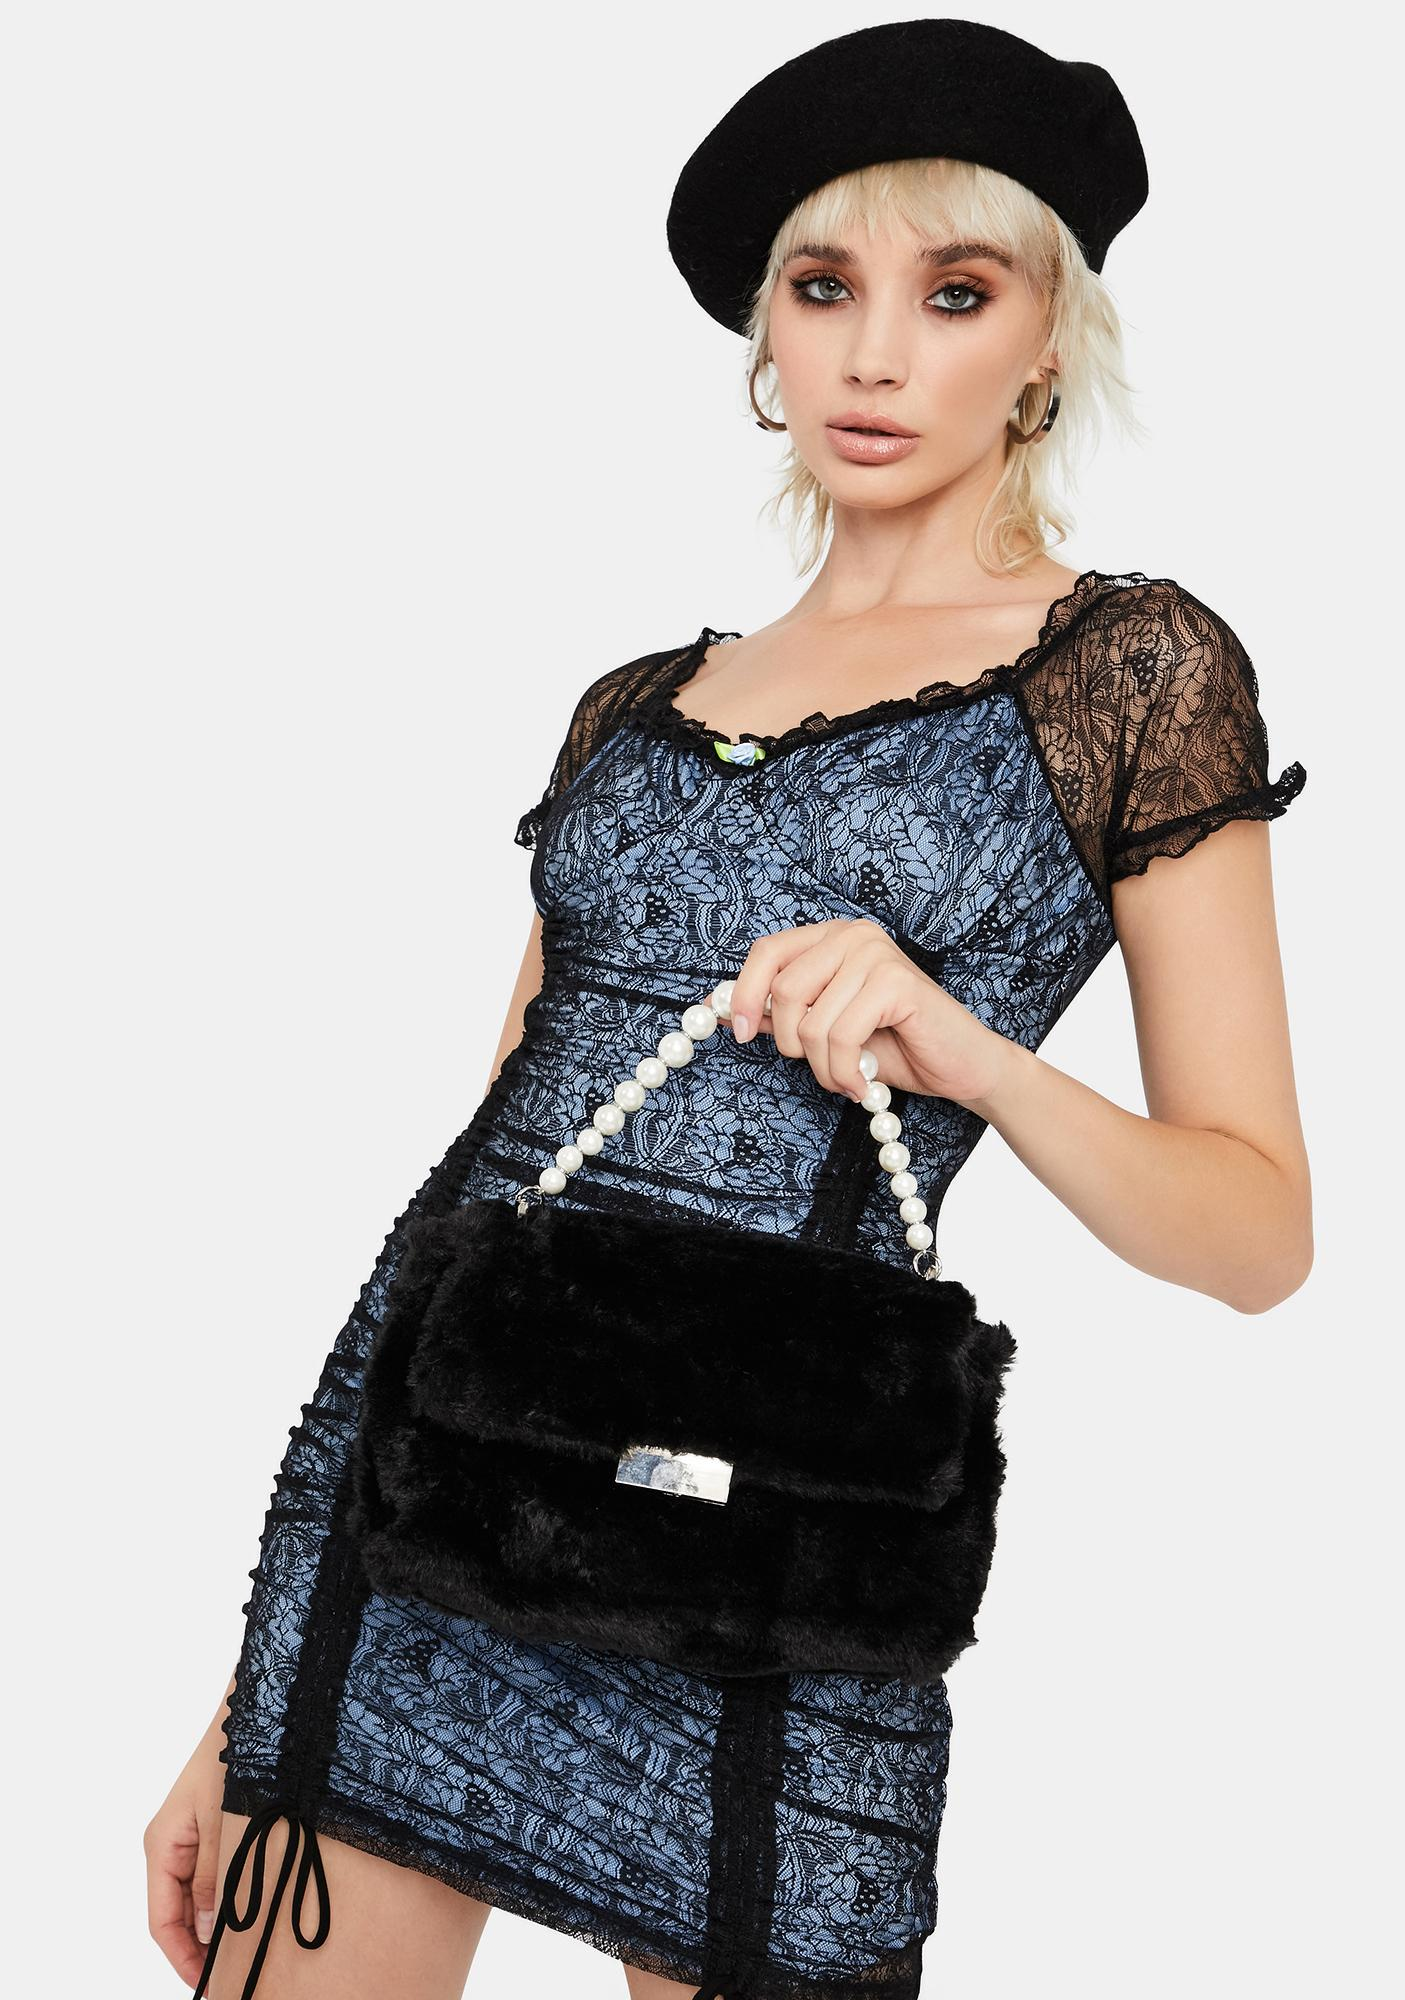 Proper N' Posh Shoulder Bag